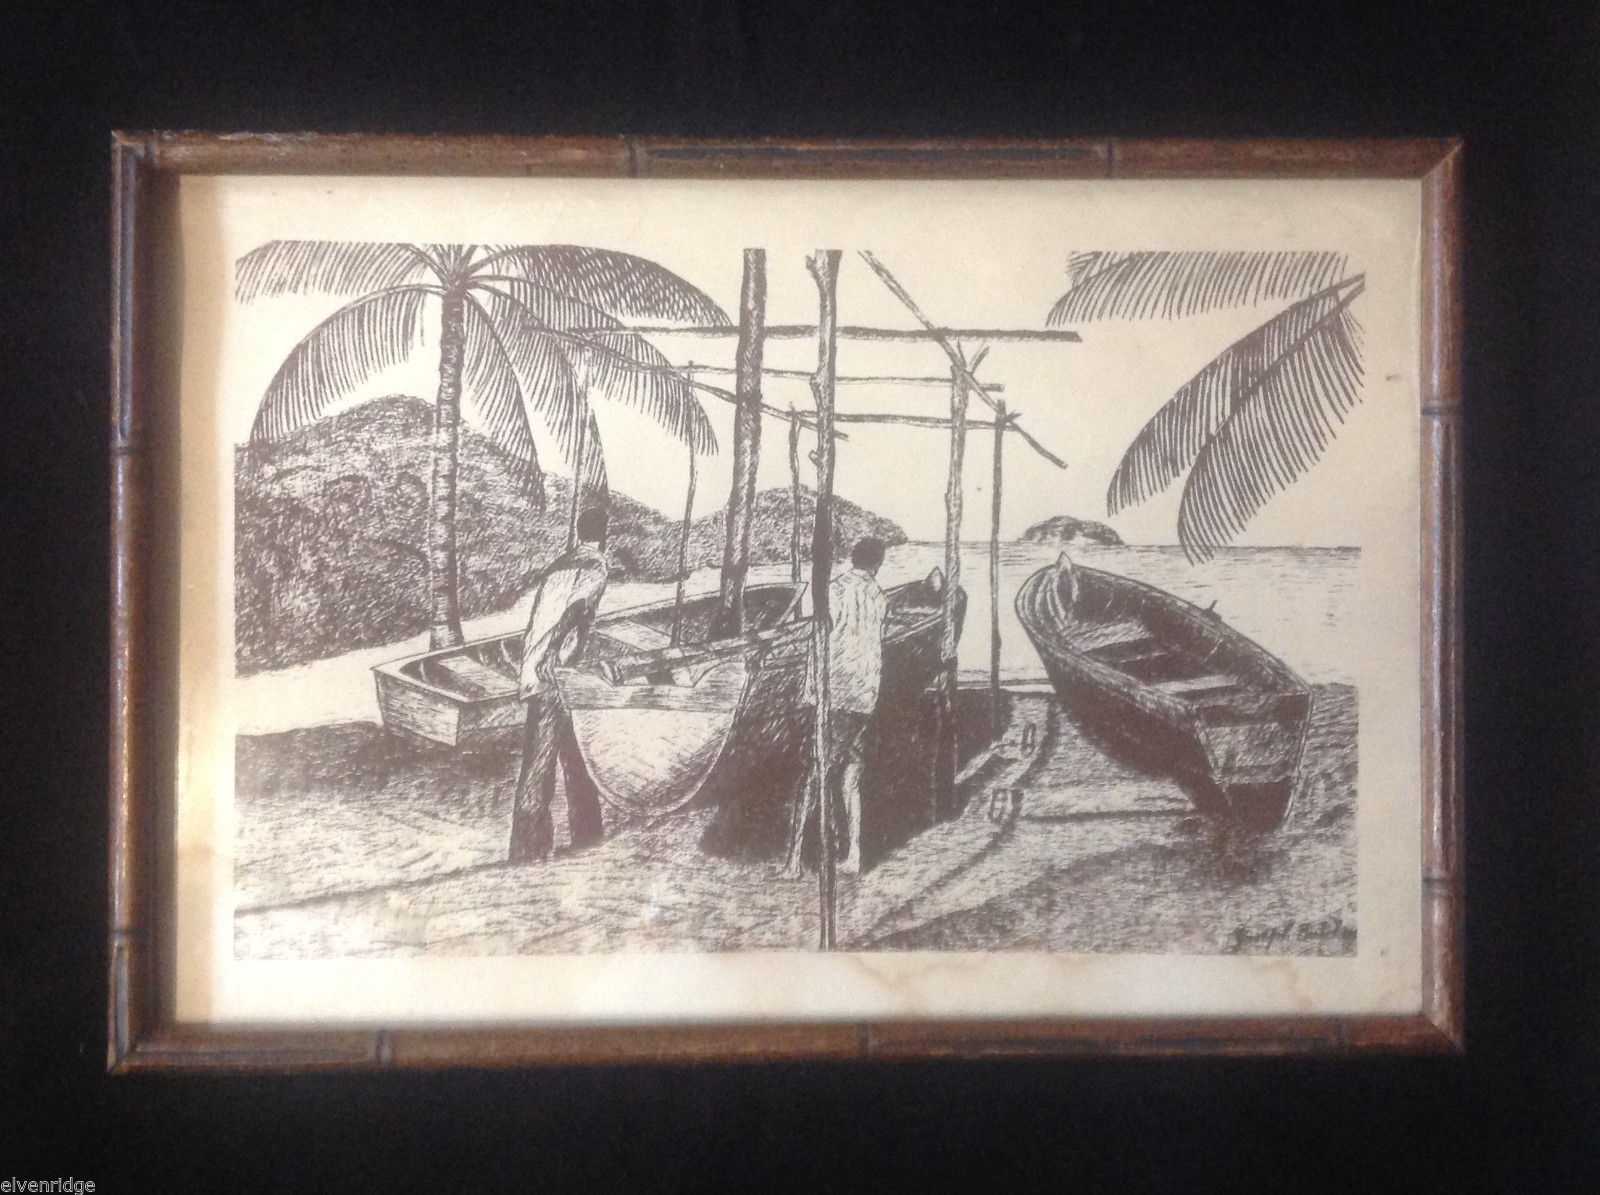 Vintage Original Signed Joseph Butcher Woodcut Print Glass Framed